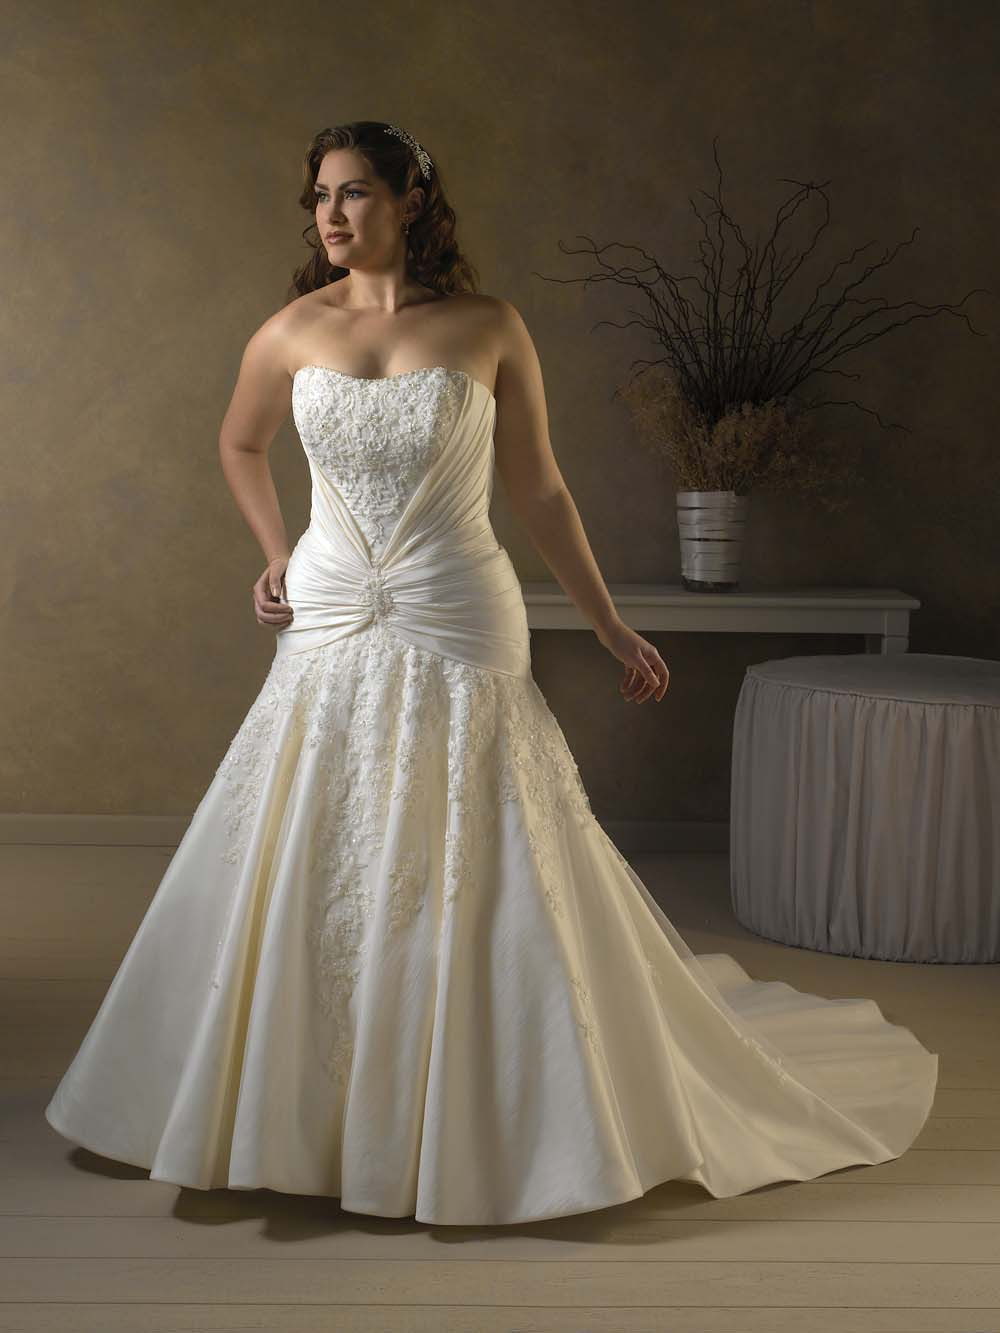 Bling Wedding Dresses For Plus Size Wedding Dresses uk Plus